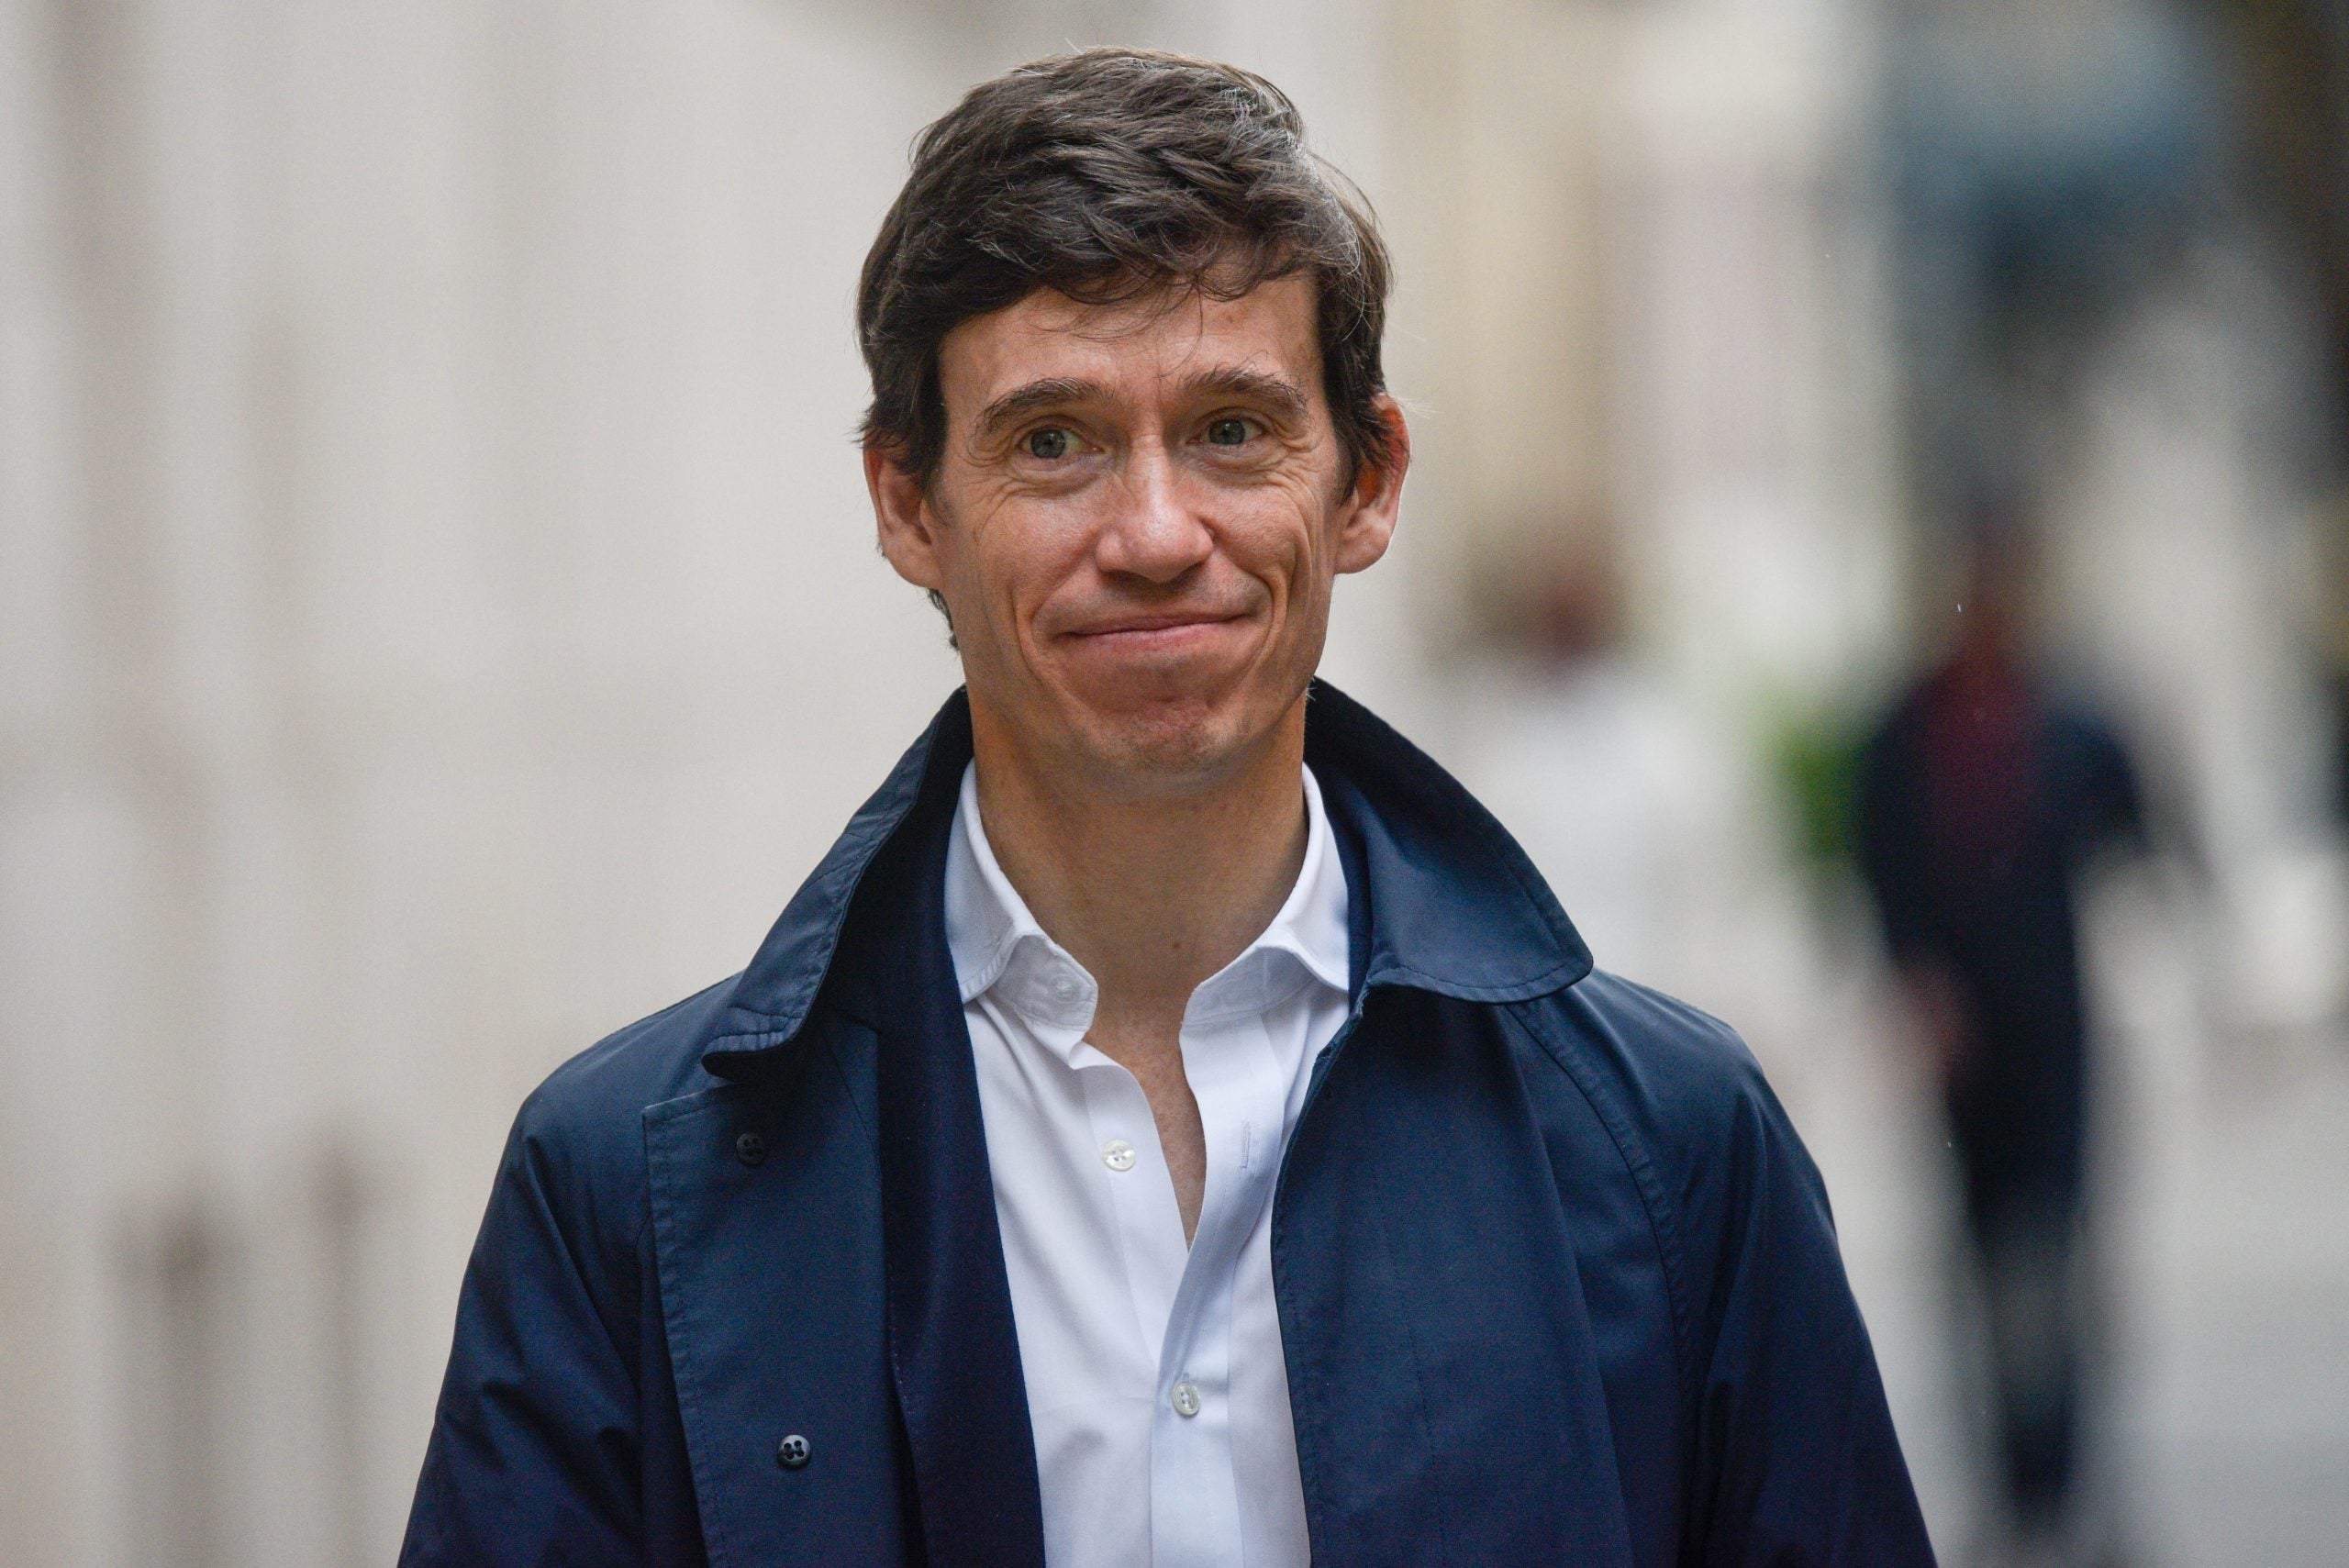 Rory walks: why Stewart pulled out of London's mayoral race